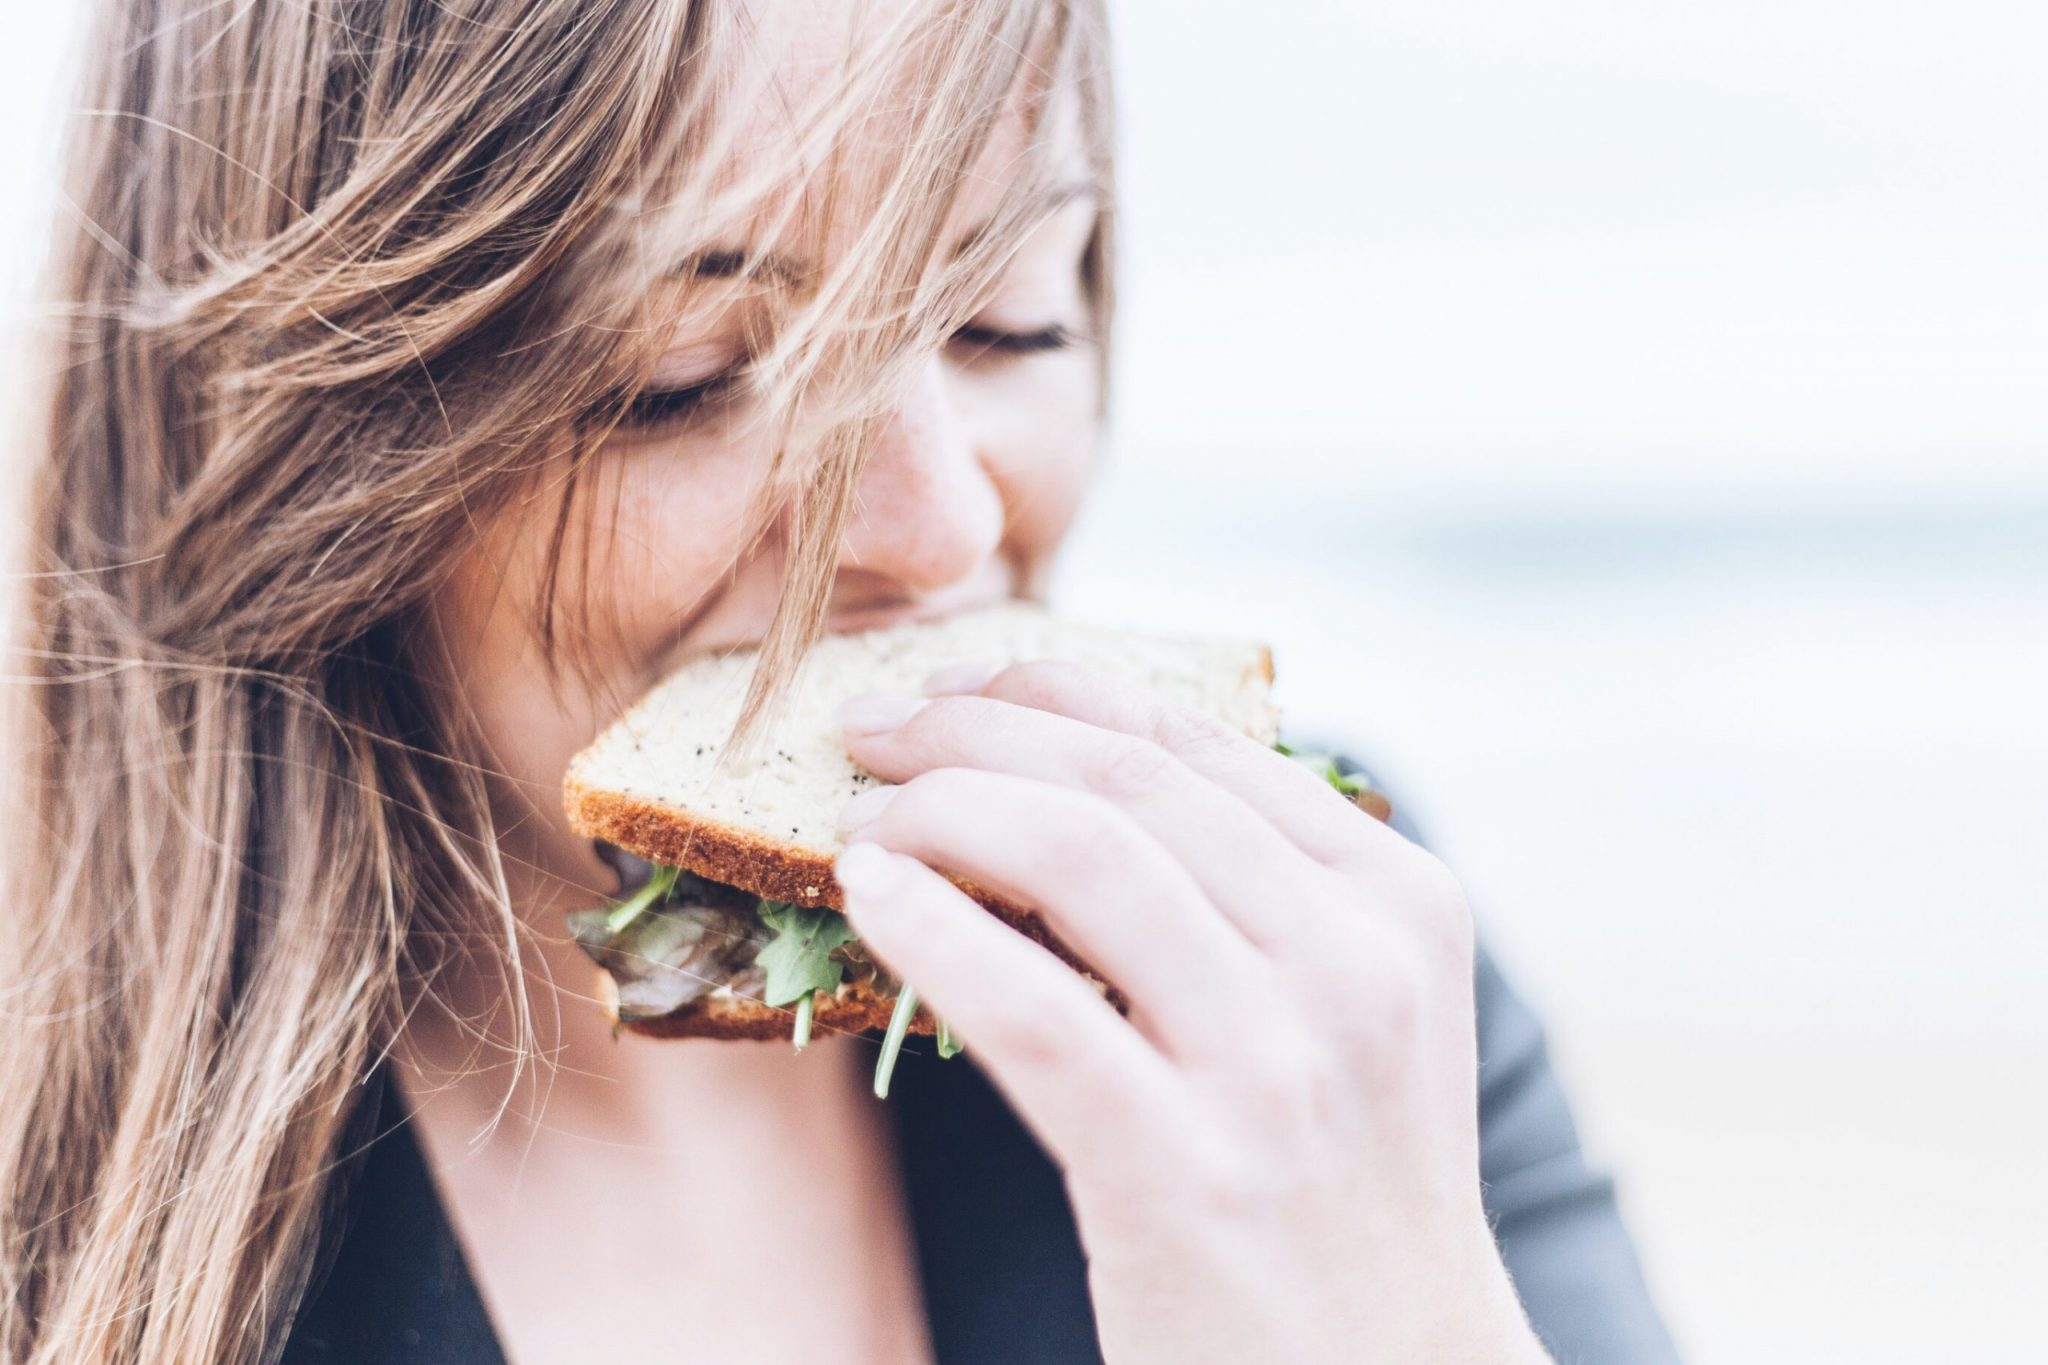 nutrition to live | girl eating sandwich